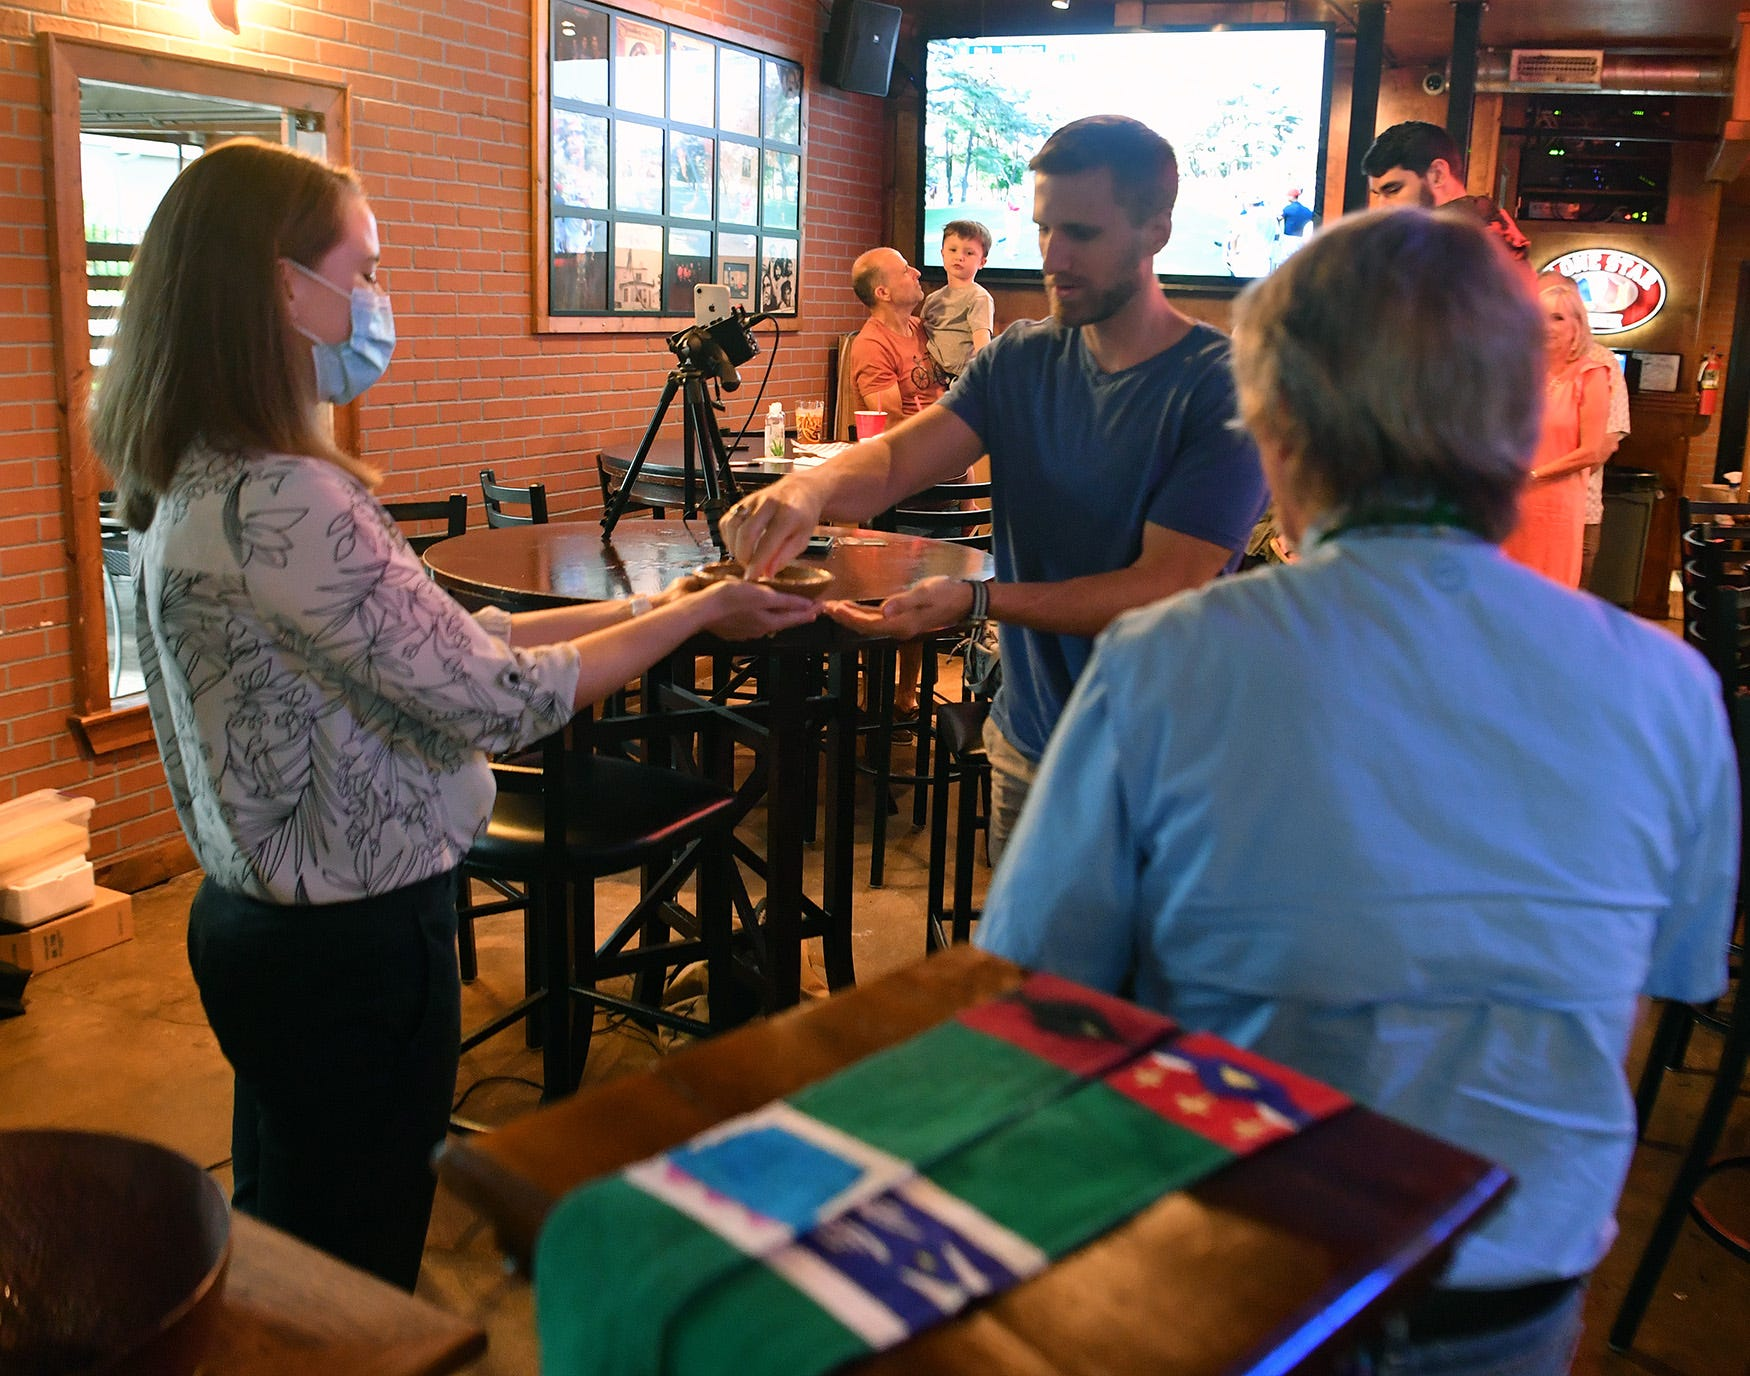 Rev. KristinKlade, left, hands out communion to a worshiper during the Lutheran-based Kyrie Pub church service in Fort Worth, Texas.